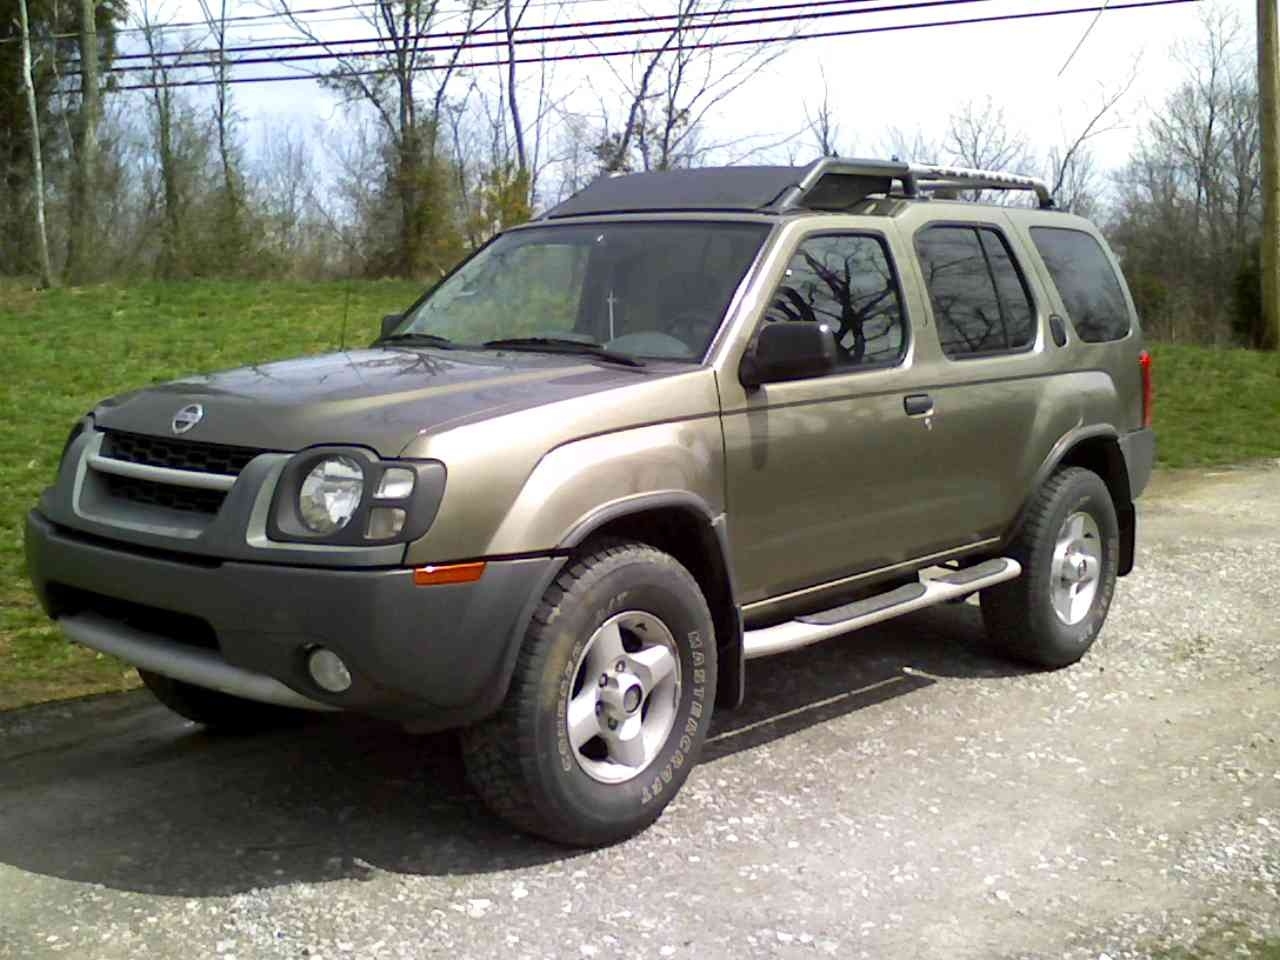 Picture of 2002 nissan xterra xe v6 4wd exterior gallery_worthy